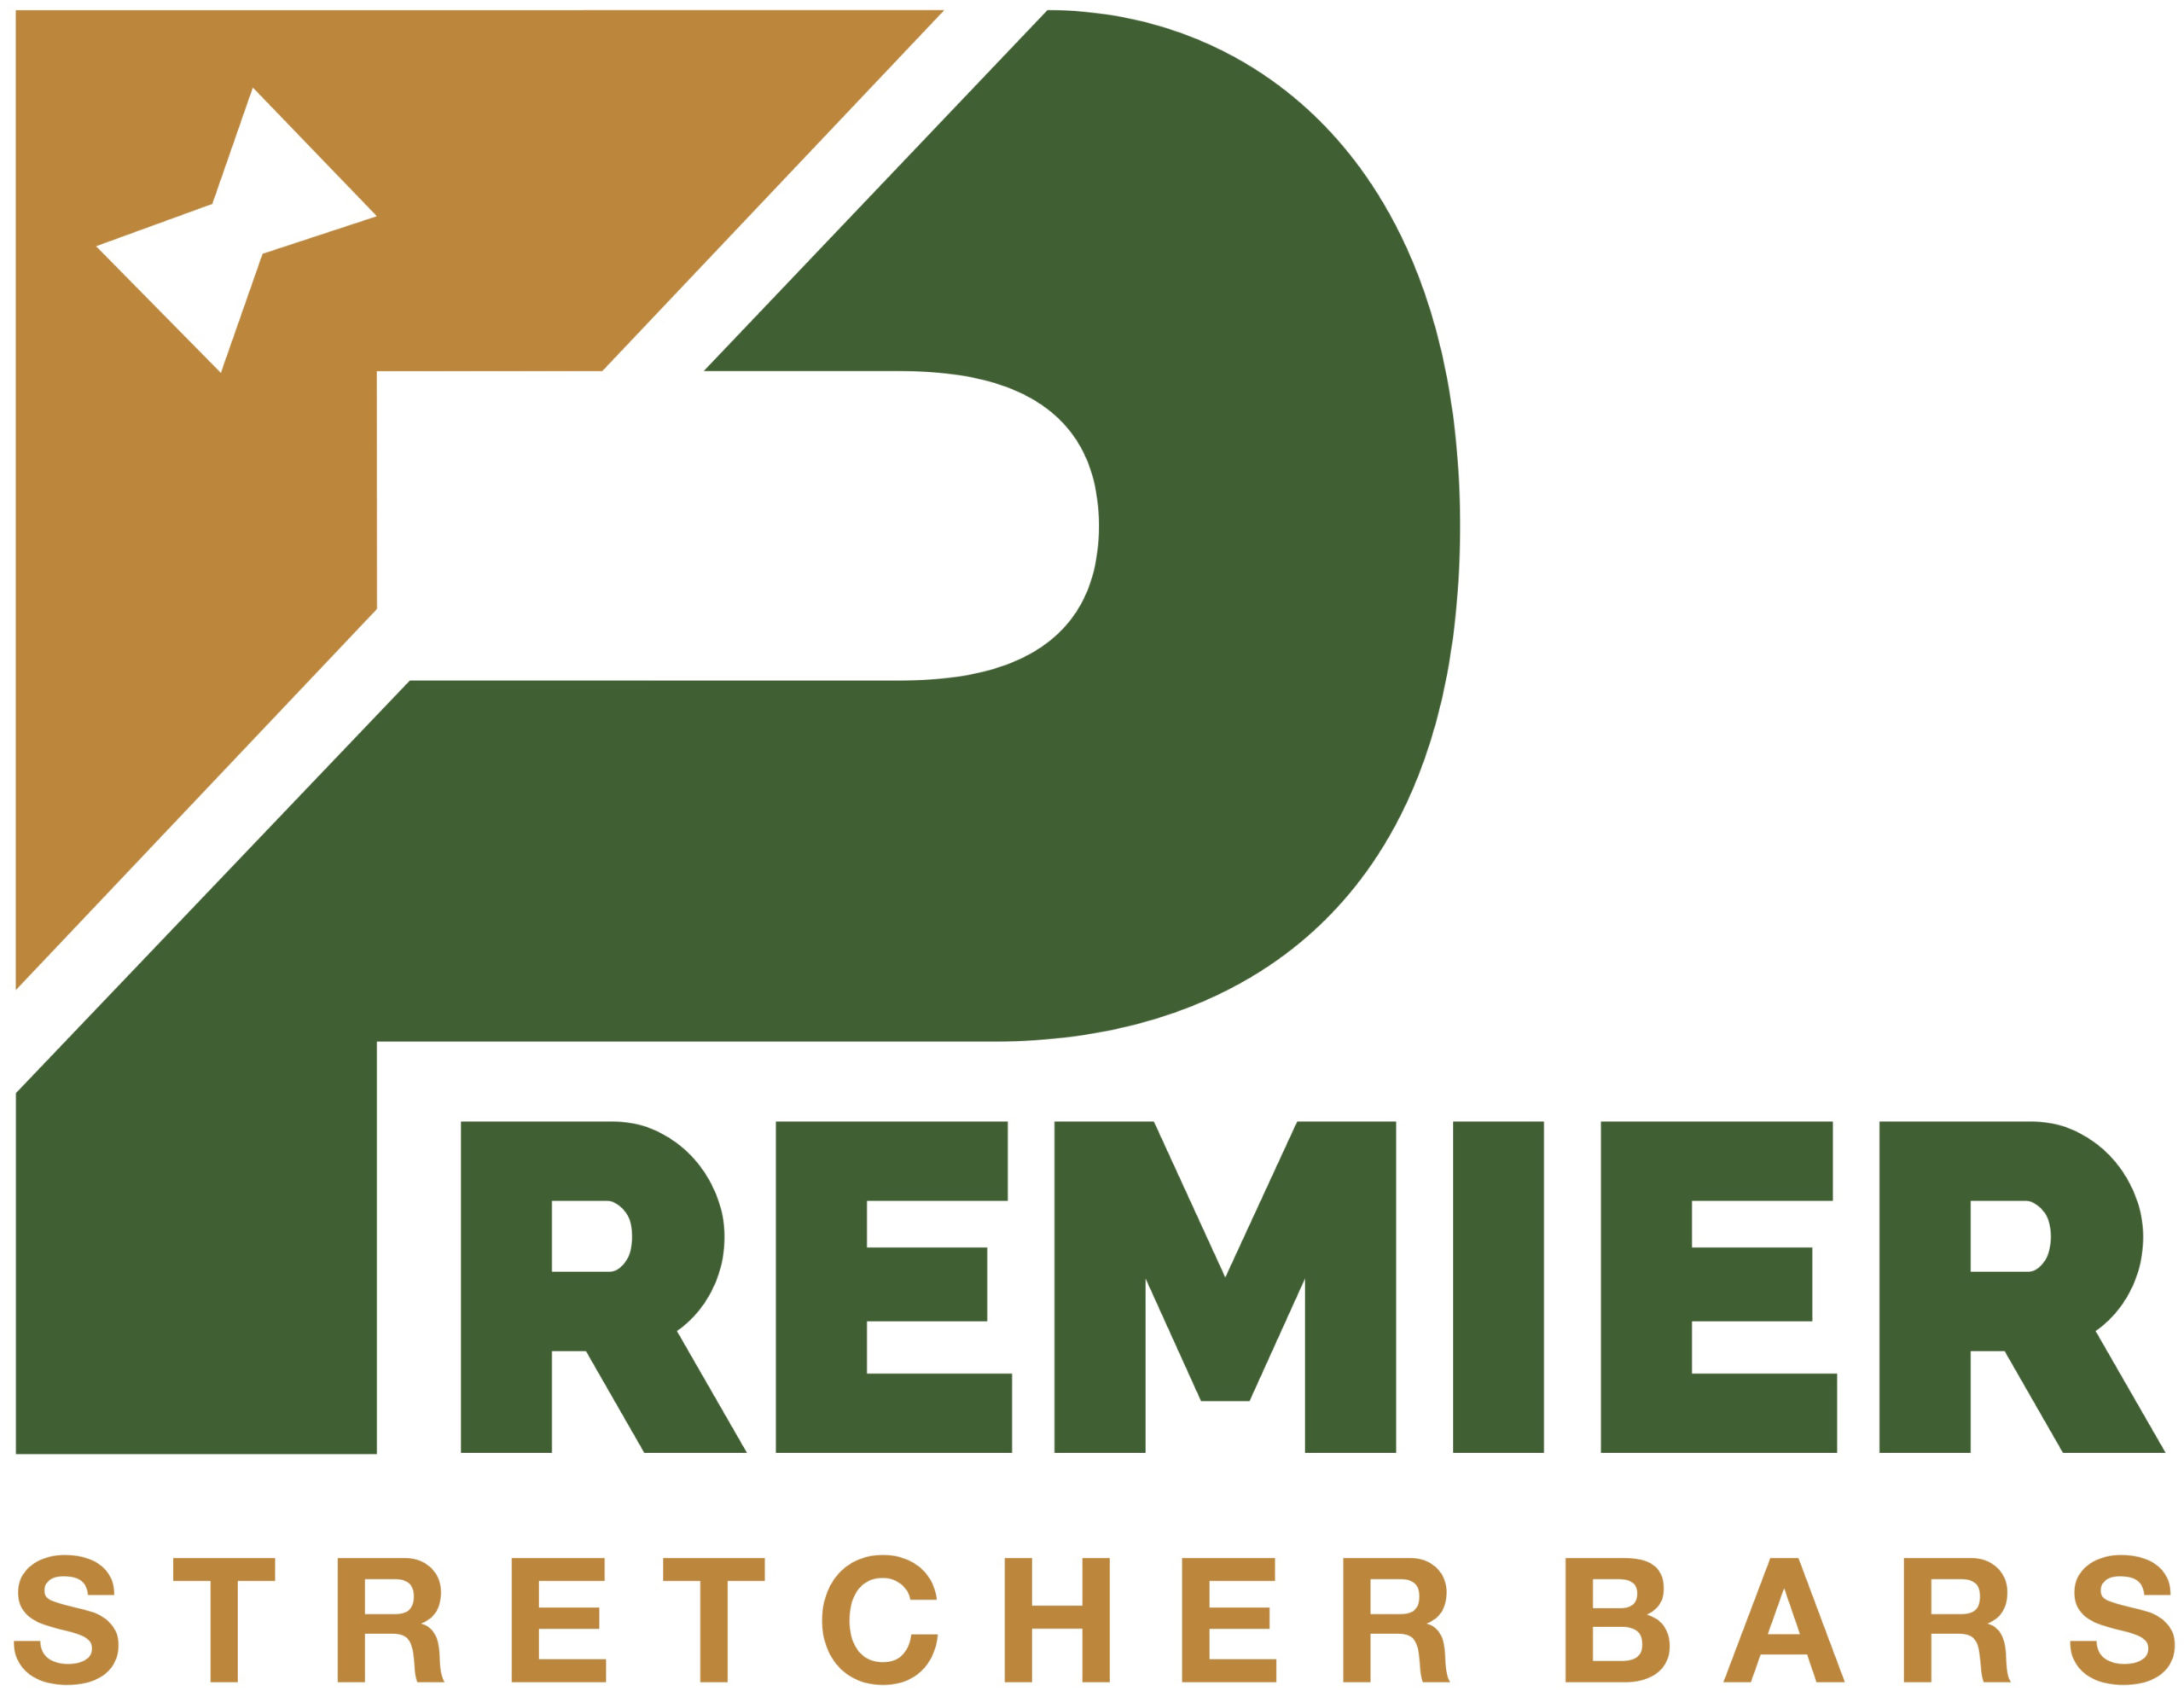 Premier Stretcher Bars